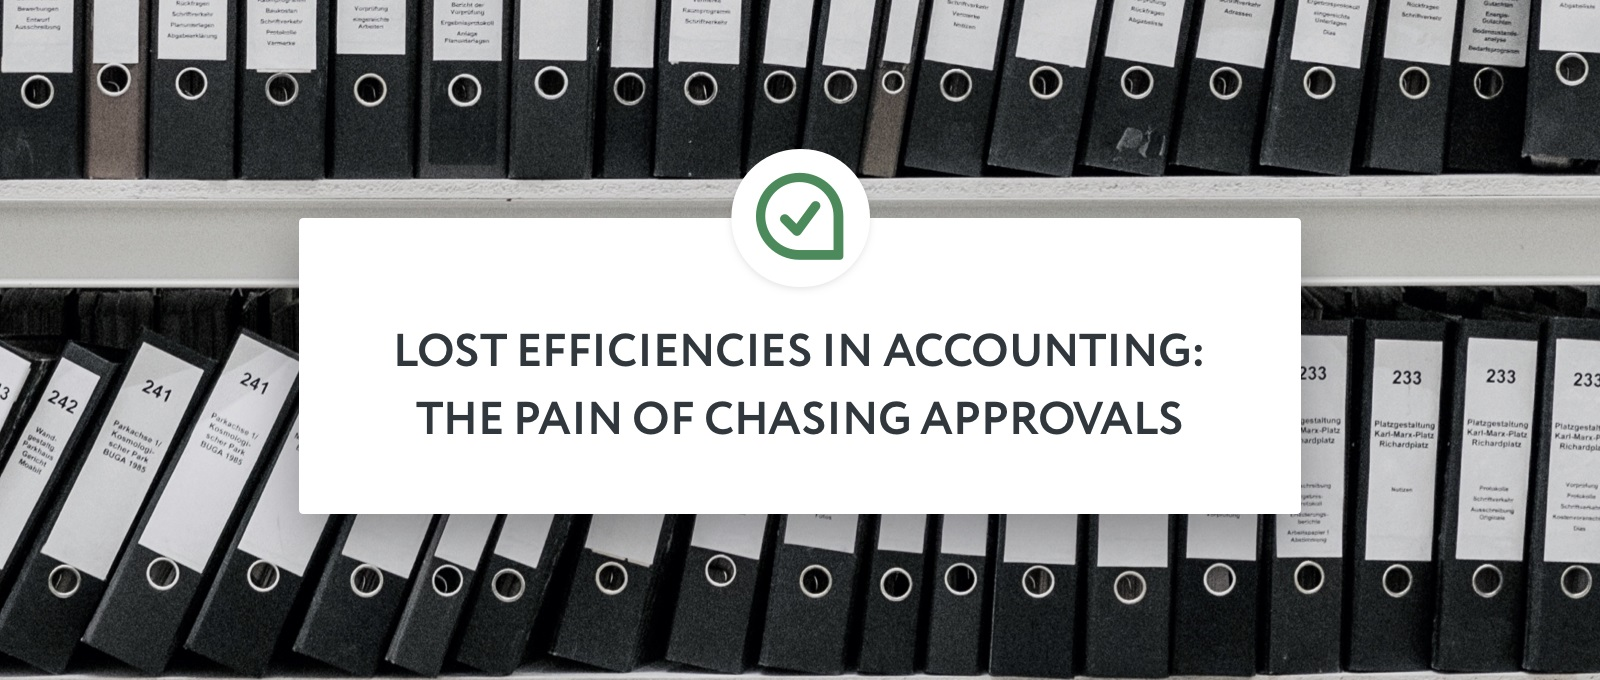 Lost Efficiencies in Accounting: The Pain of Chasing